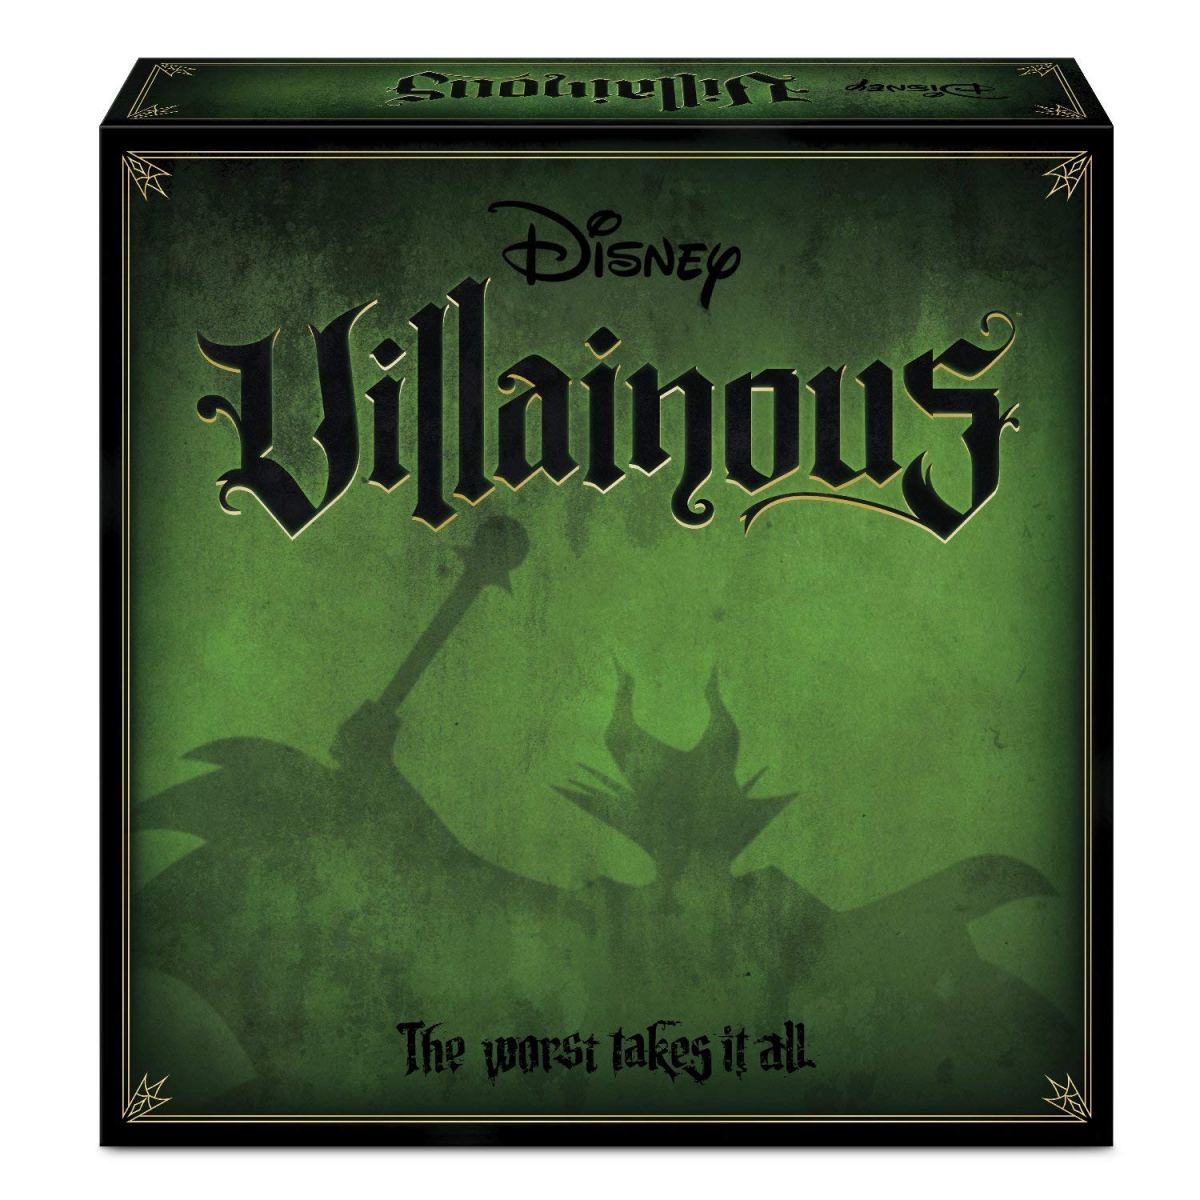 New Disney Villainous Board Game Is Now on Pre-Order